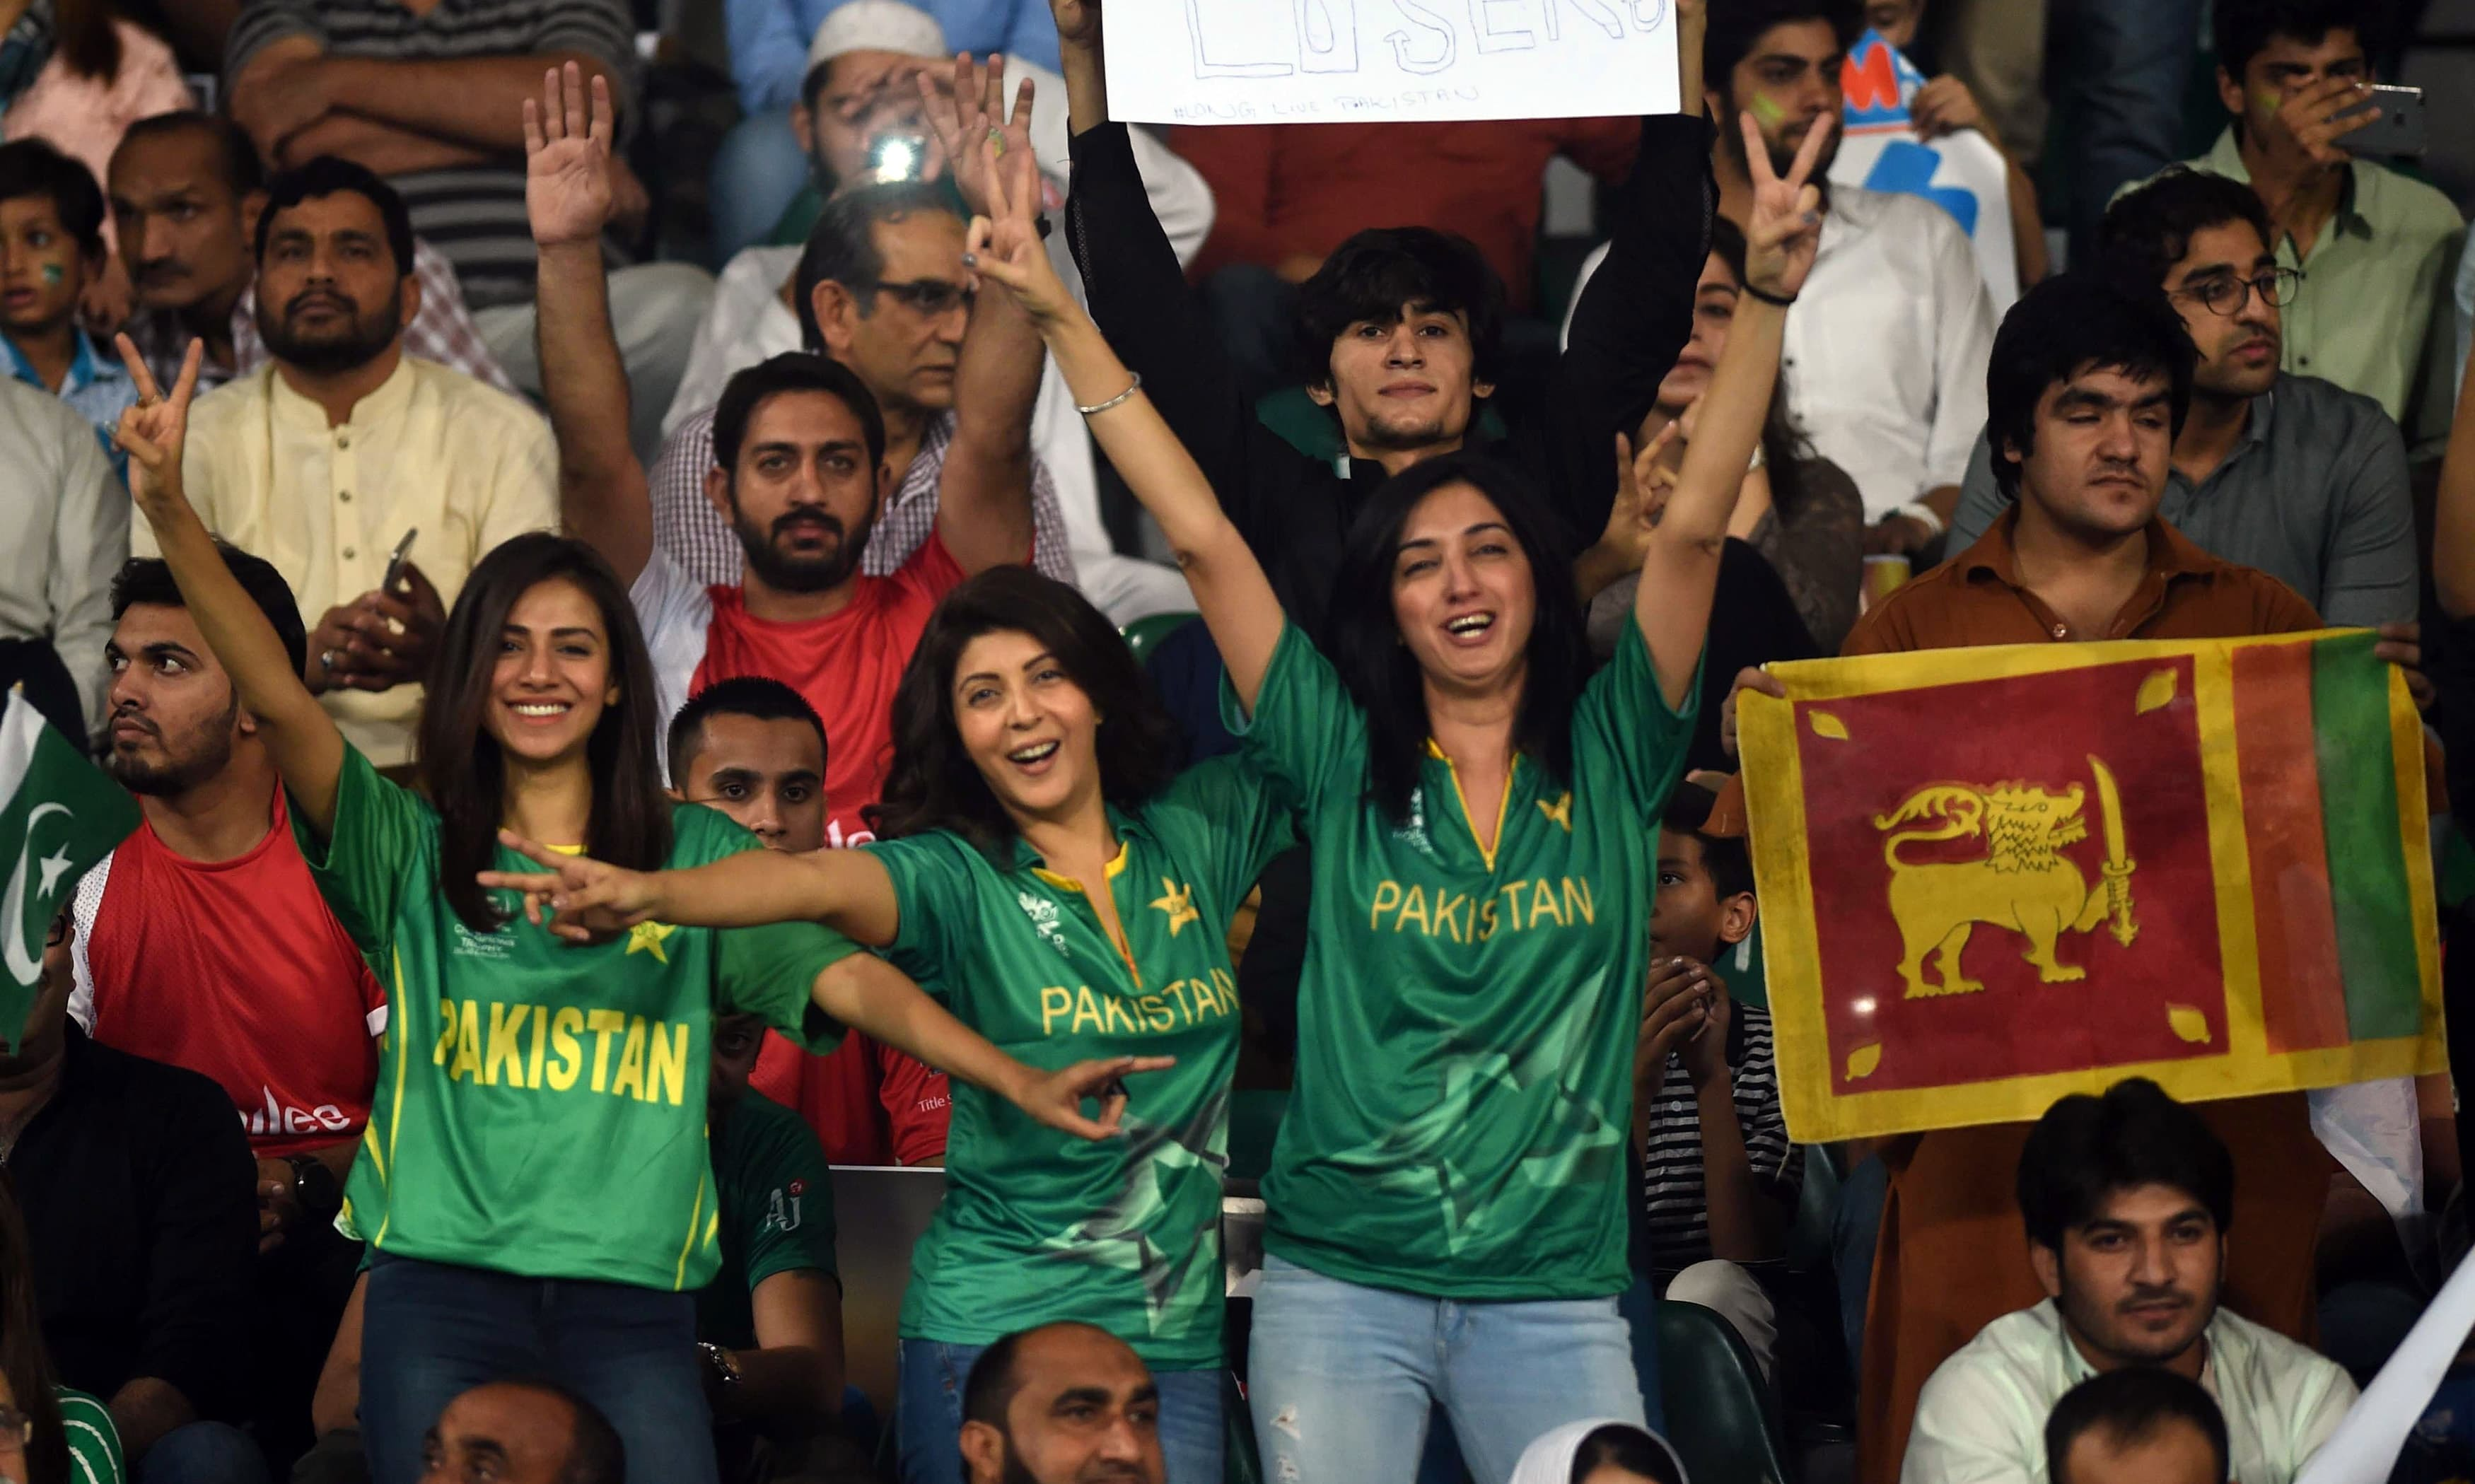 The Twenty20 against Sri Lanka took less than four hours to play but its significance will last far longer. —AFP